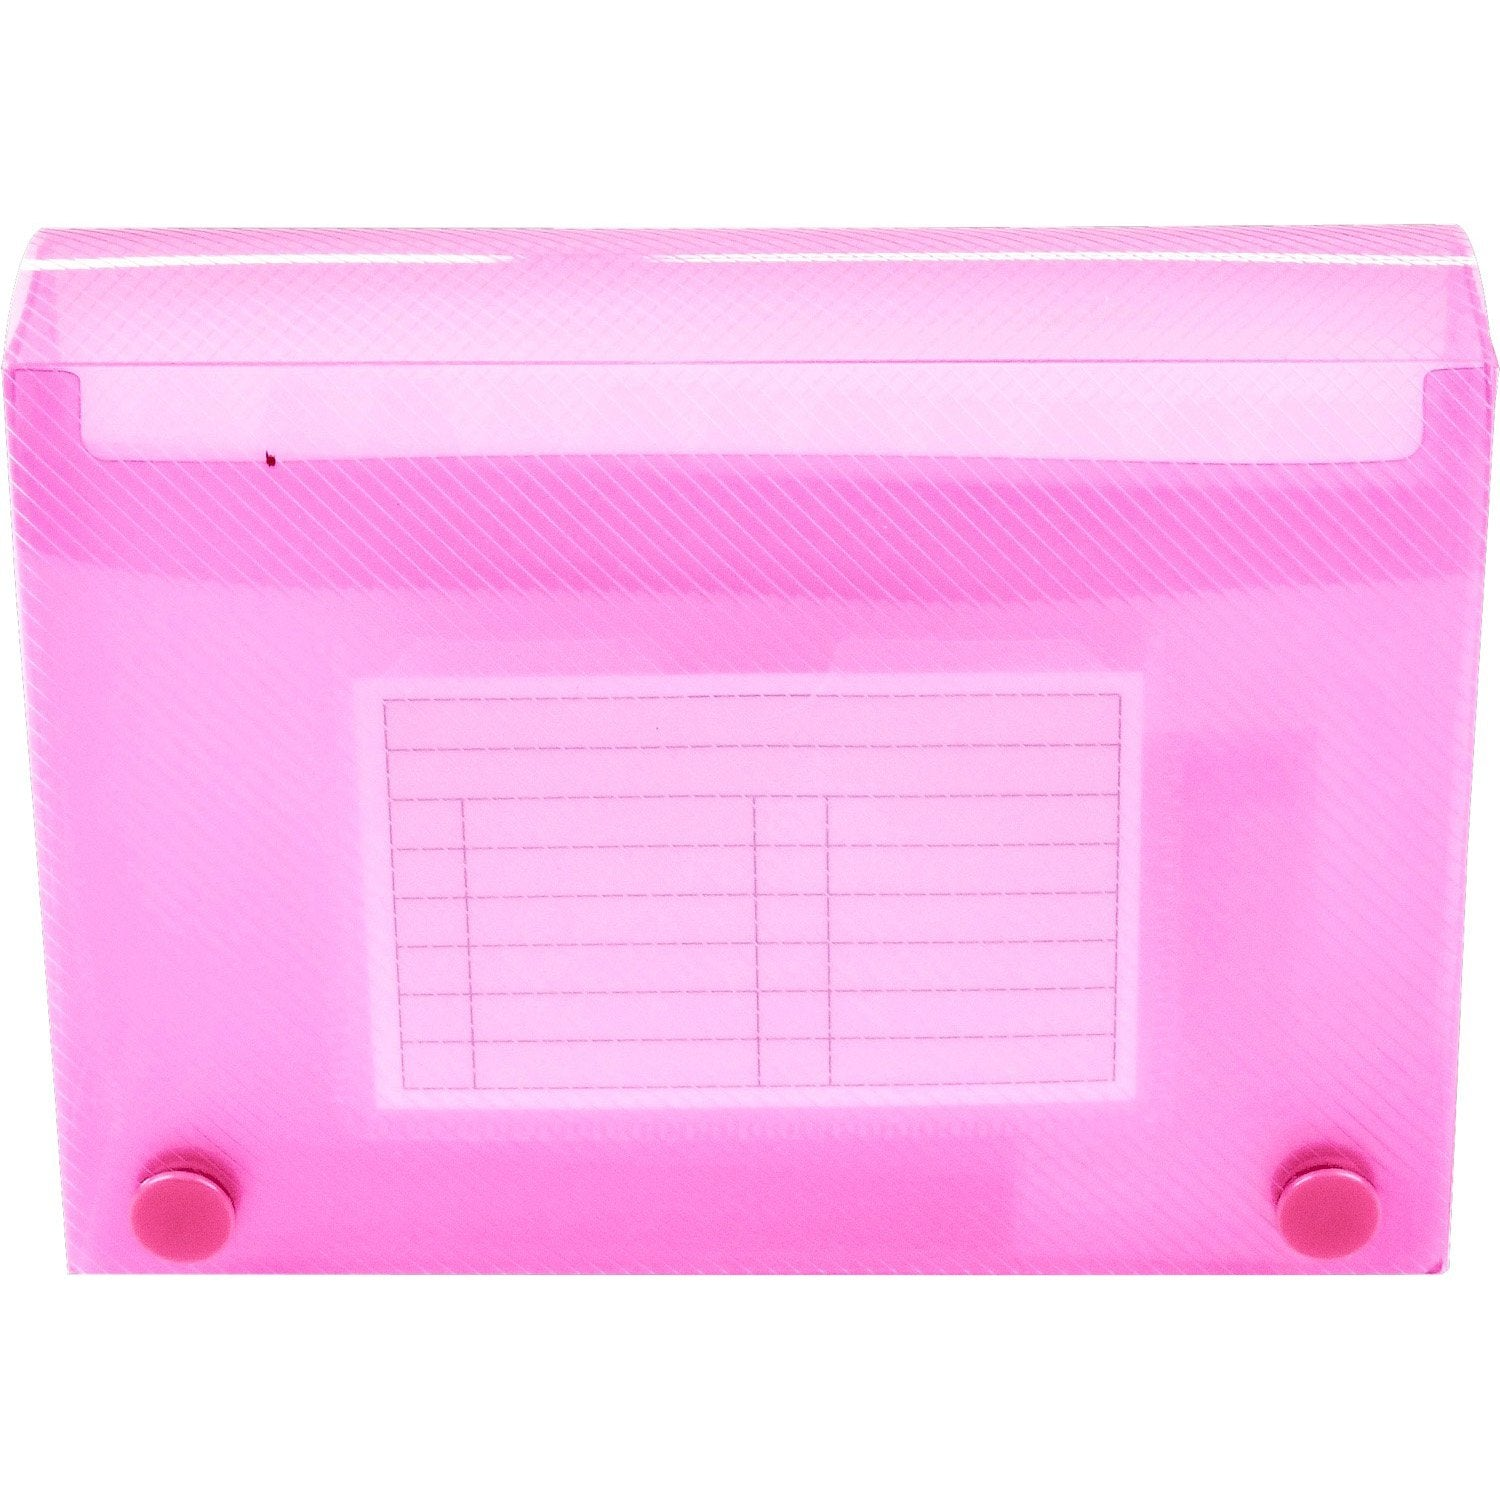 Esposti Student Revision Record Card Holder - 150 Capacity - 6 x 4 Inch - Pink